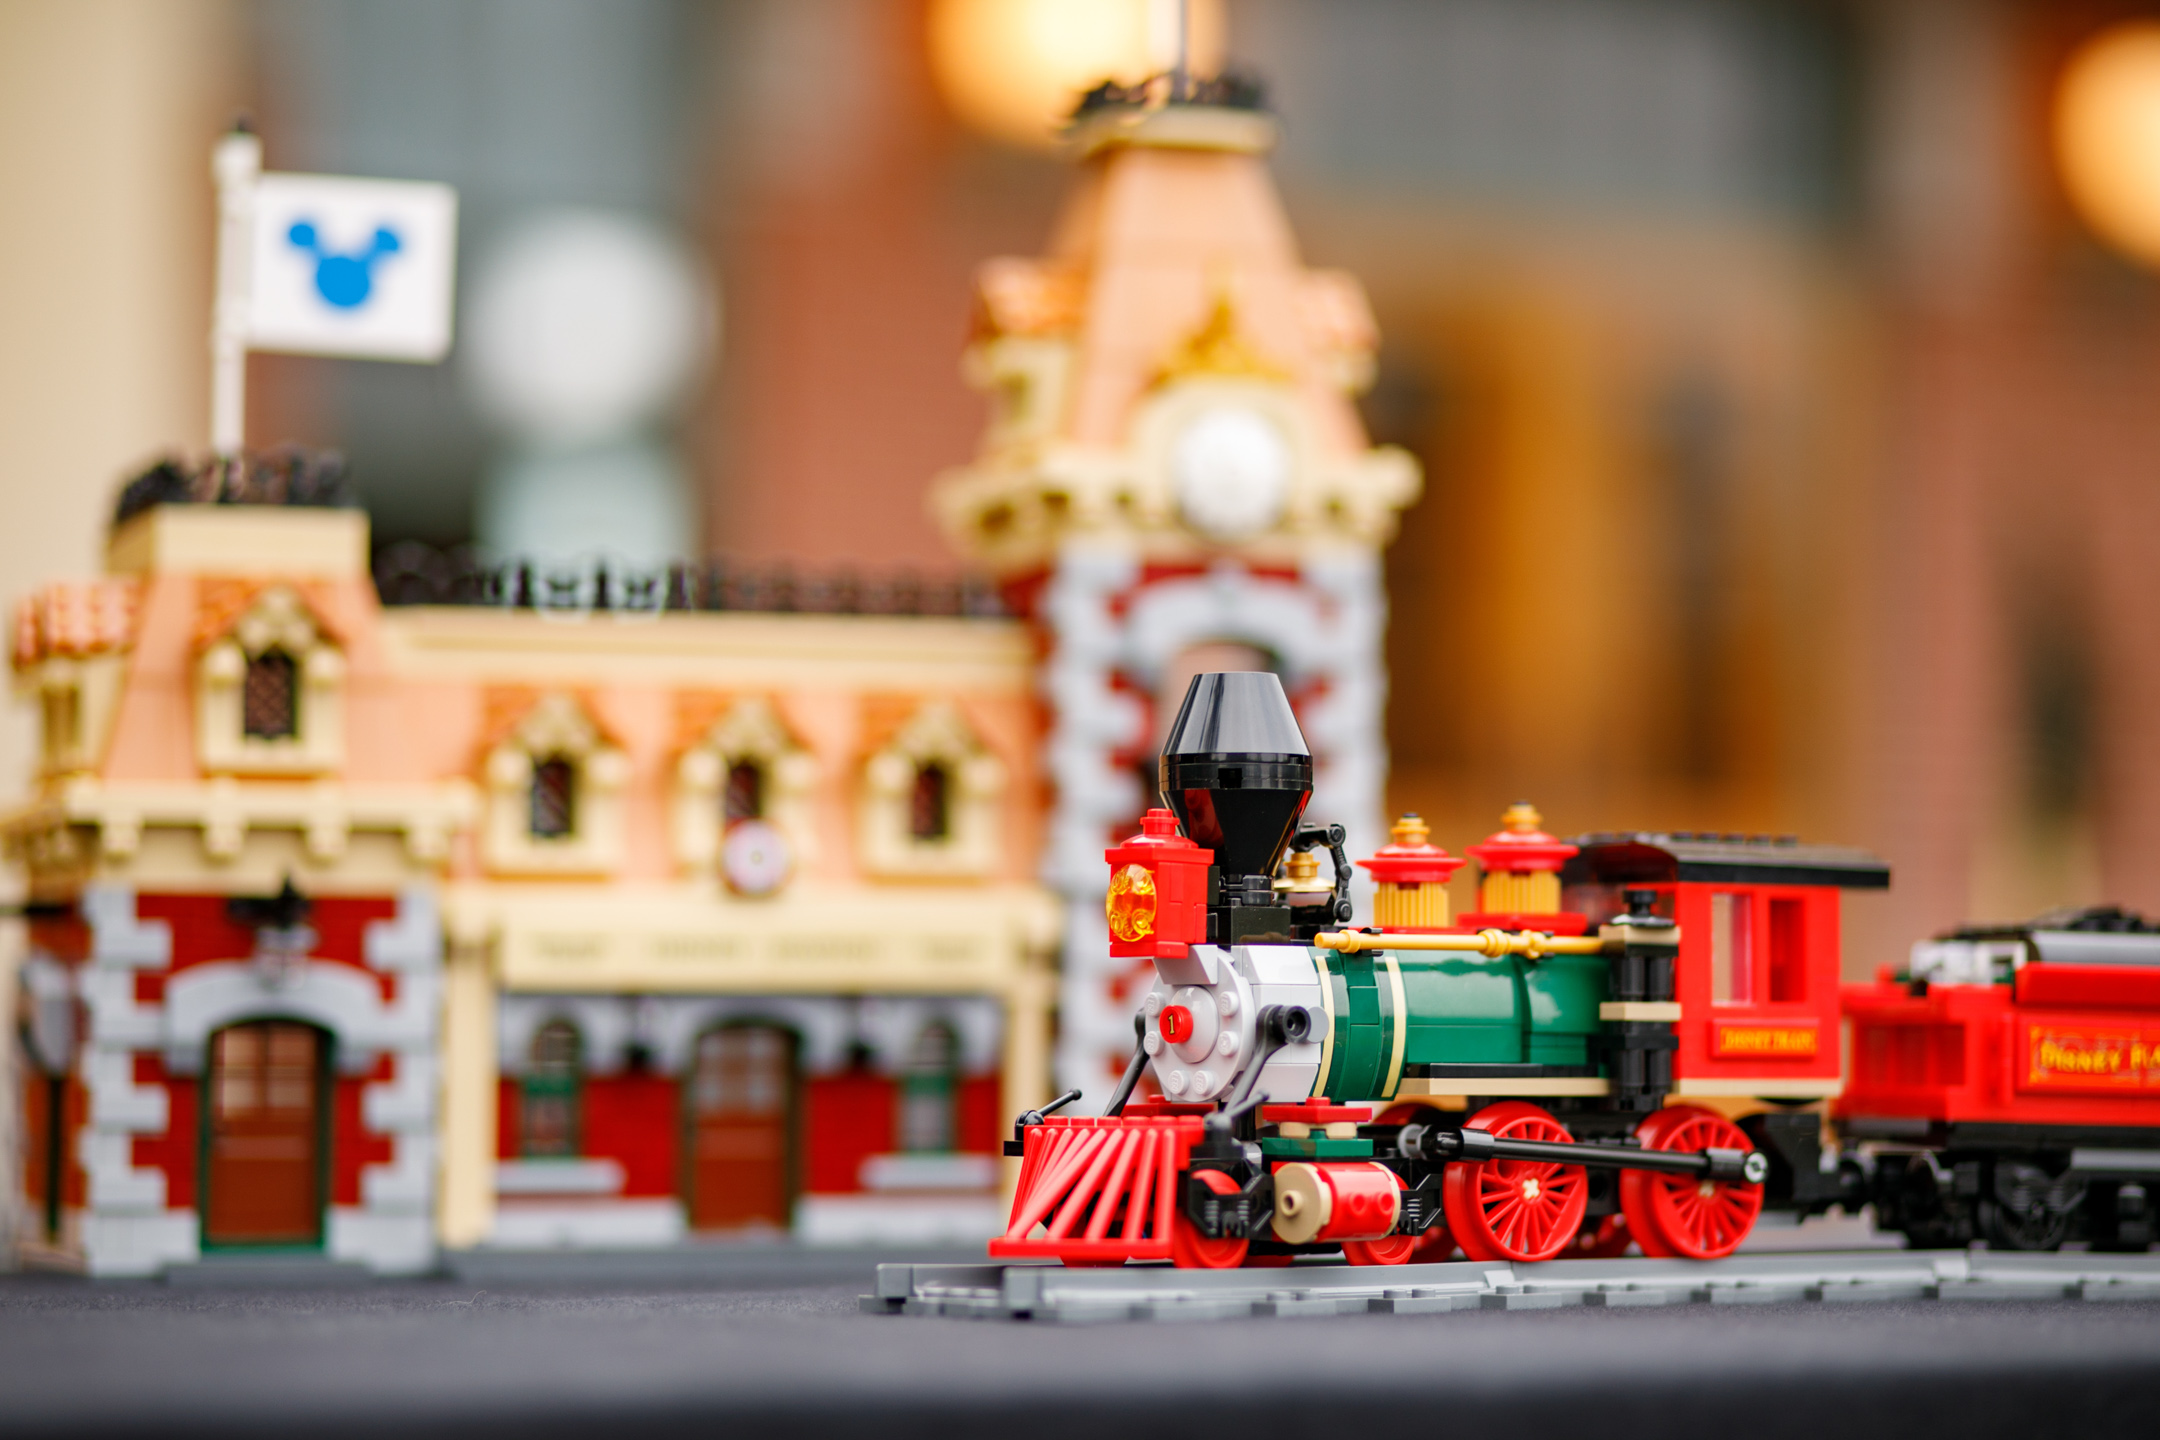 Disney Train & Station Set Launching August 21 | Brick Brains